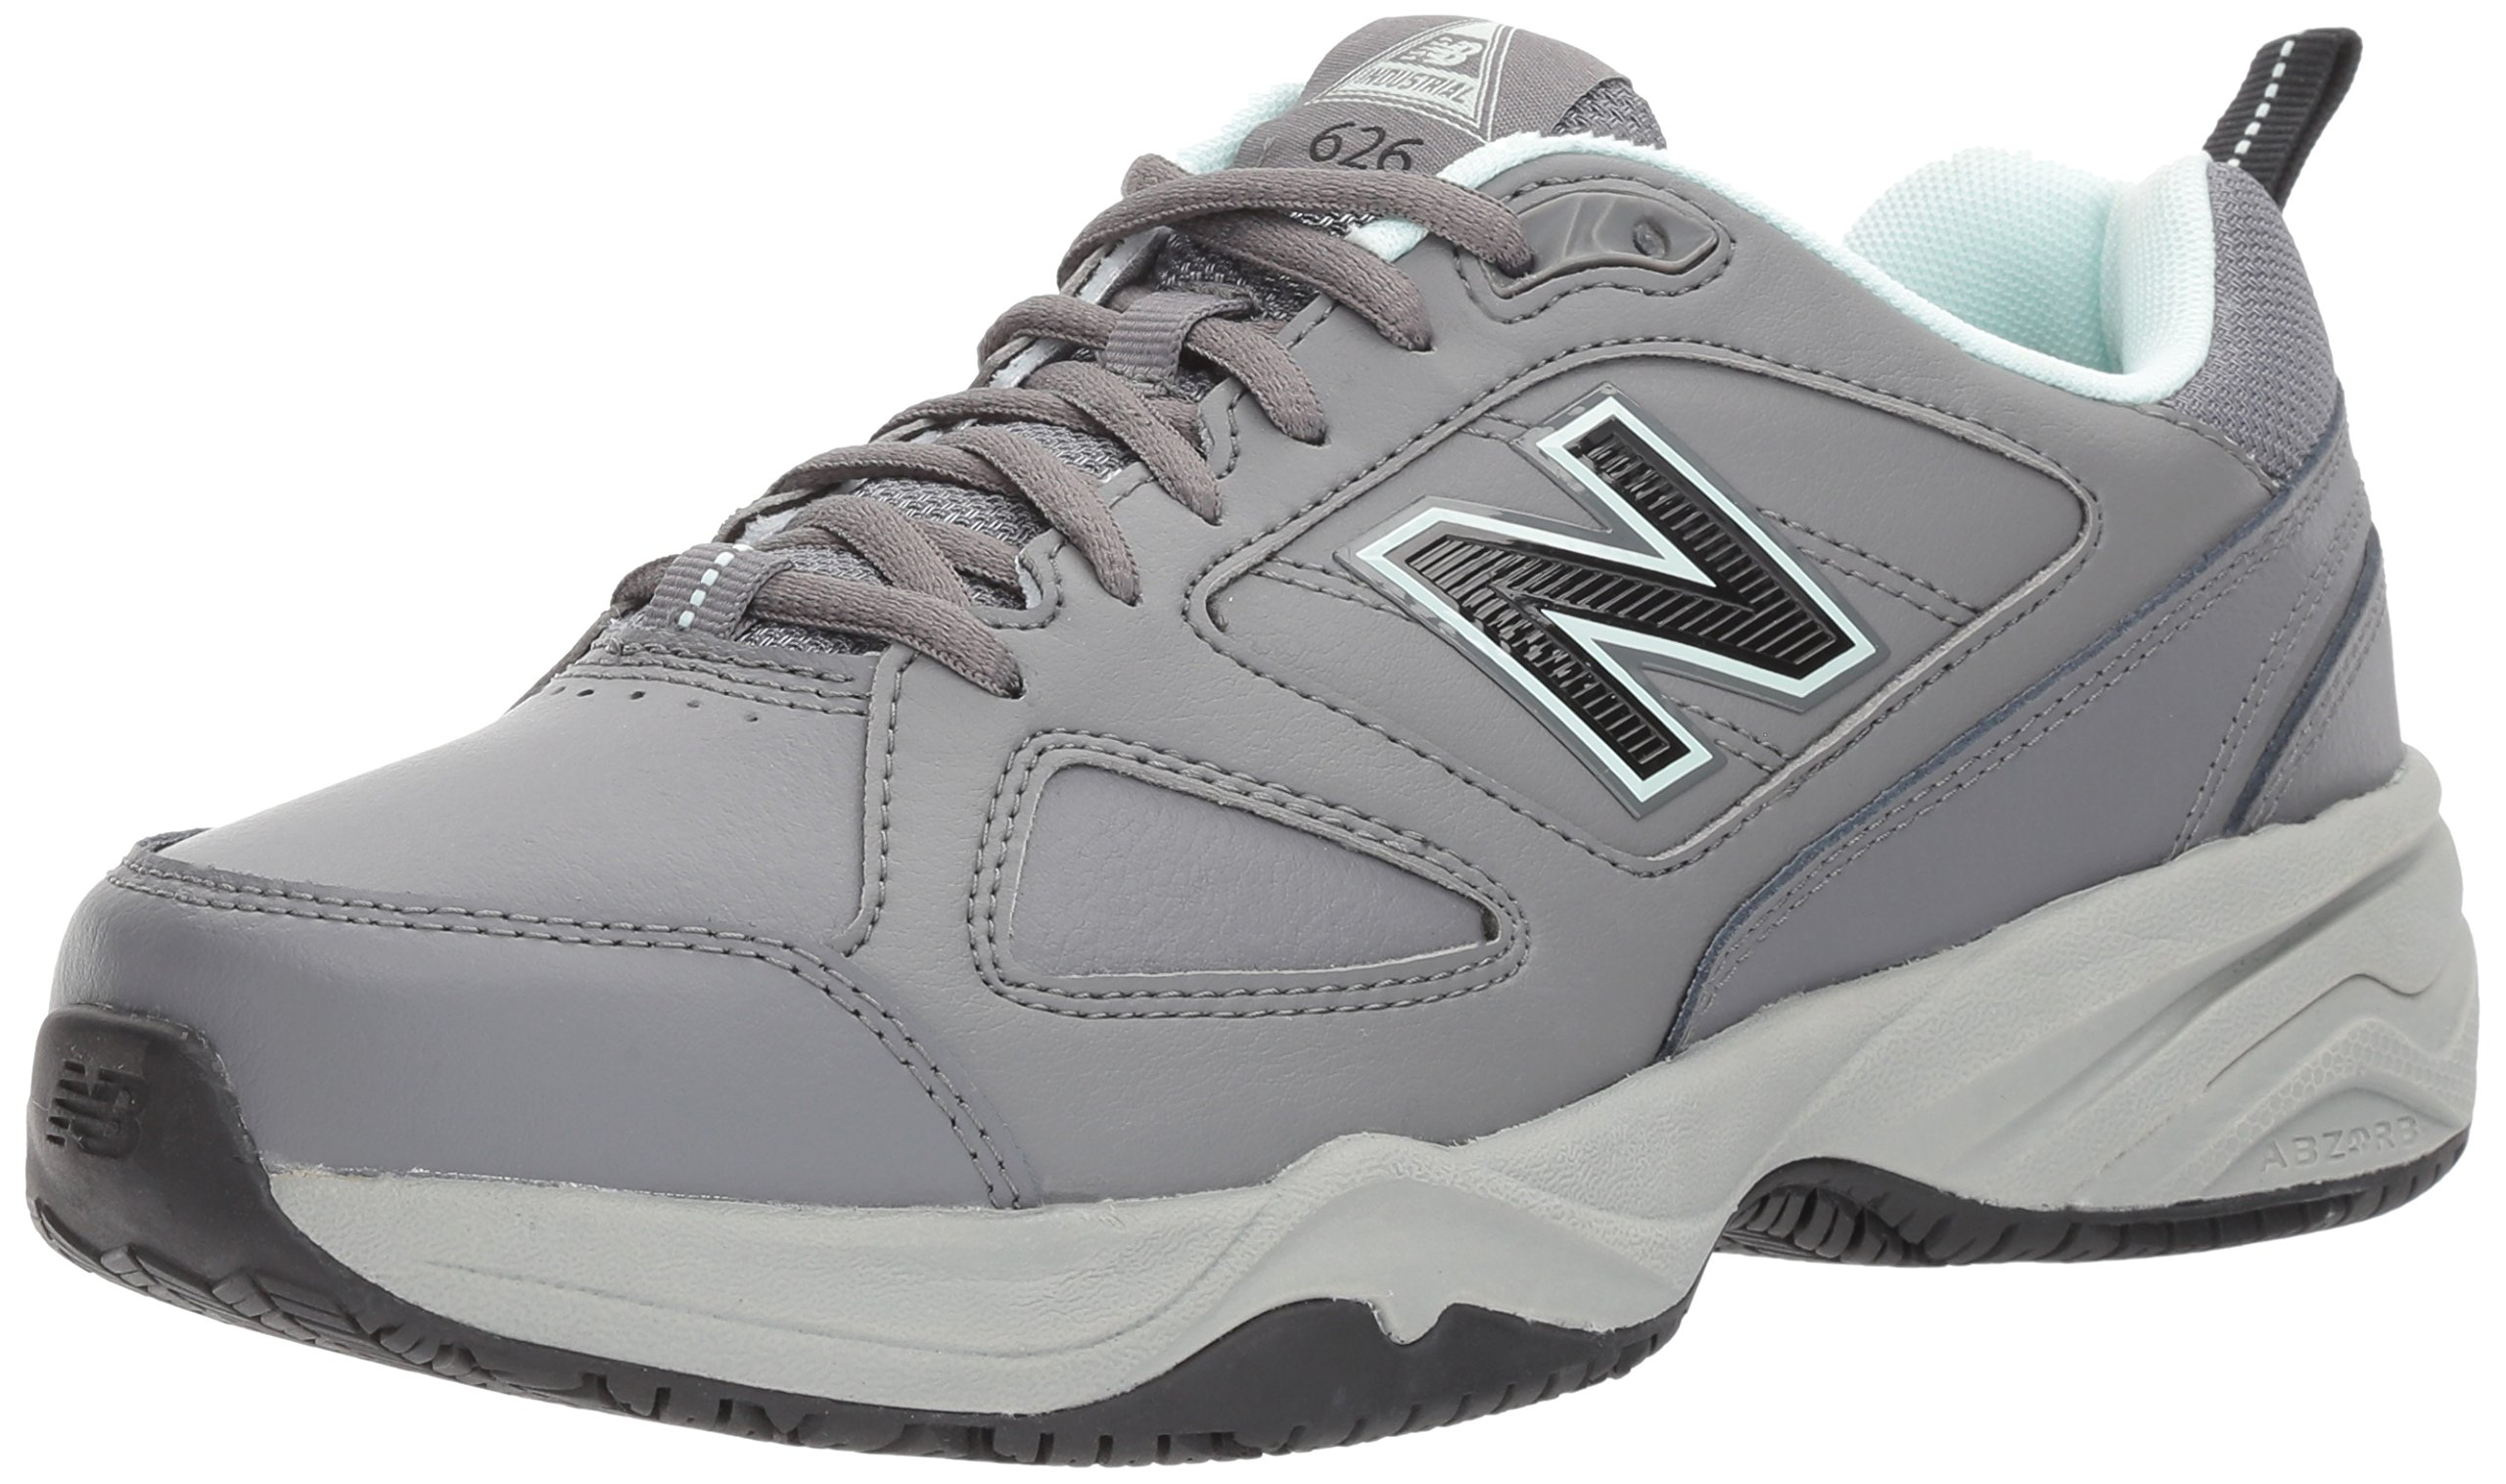 New Balance Women's WID626v2 Work Training Shoe, Grey/Blue, 13 D US